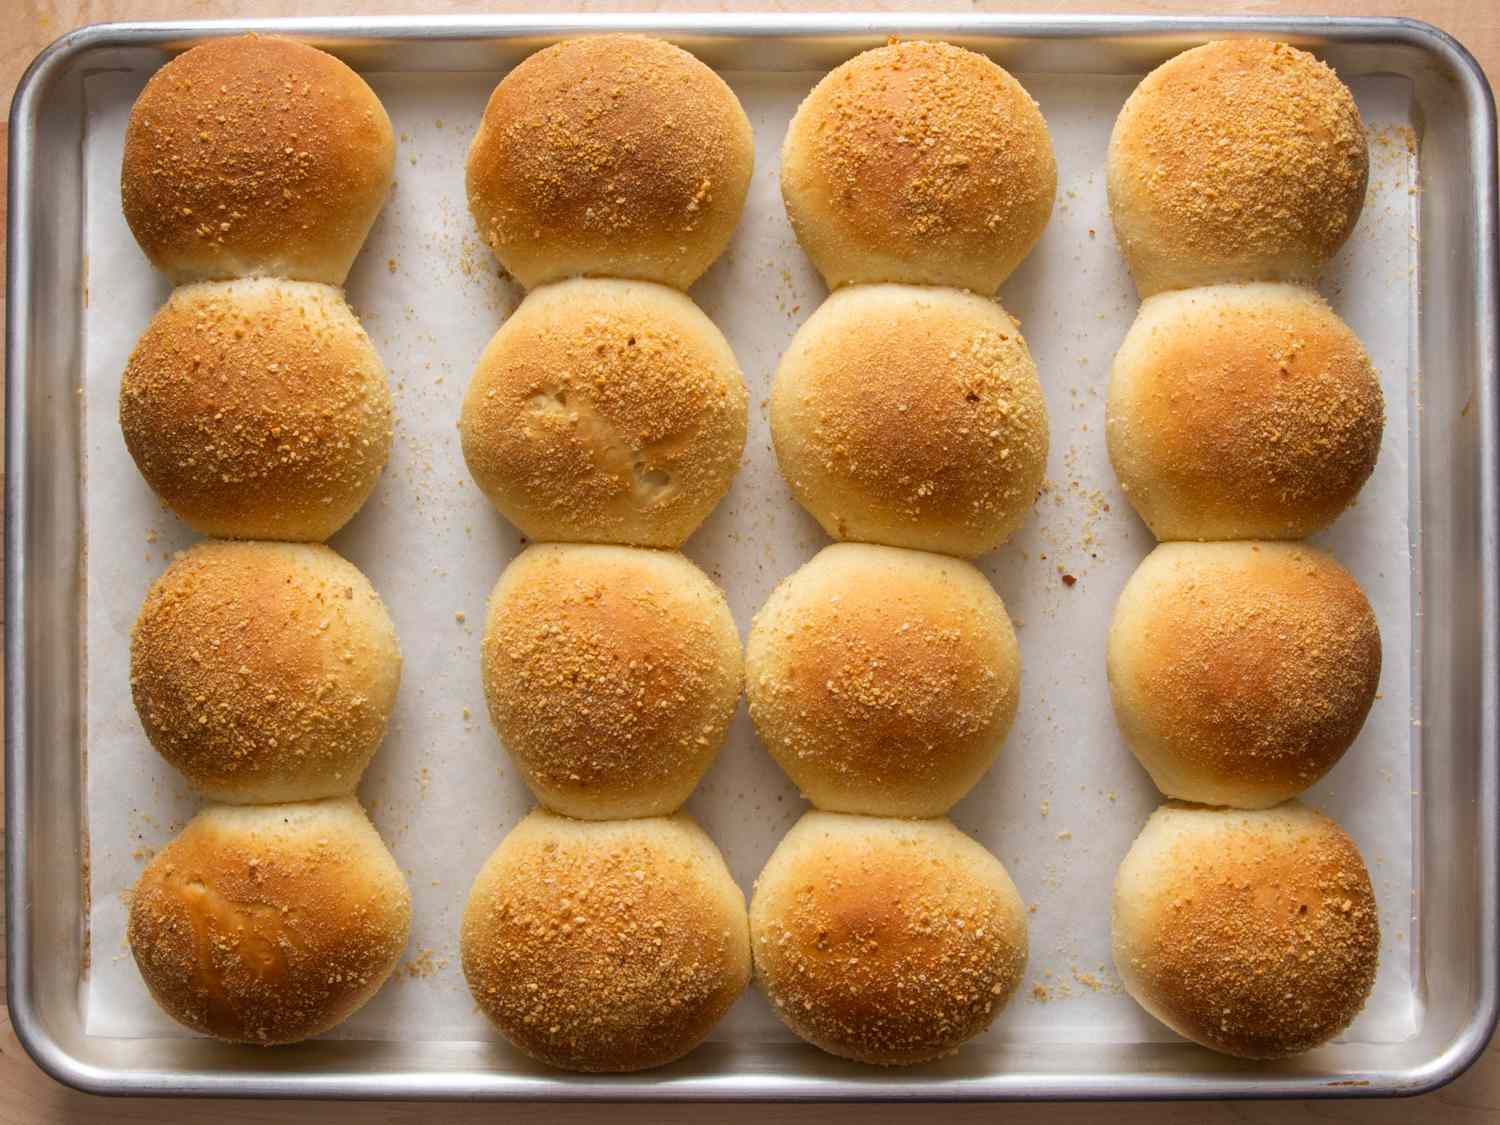 a tray of baked pandesal